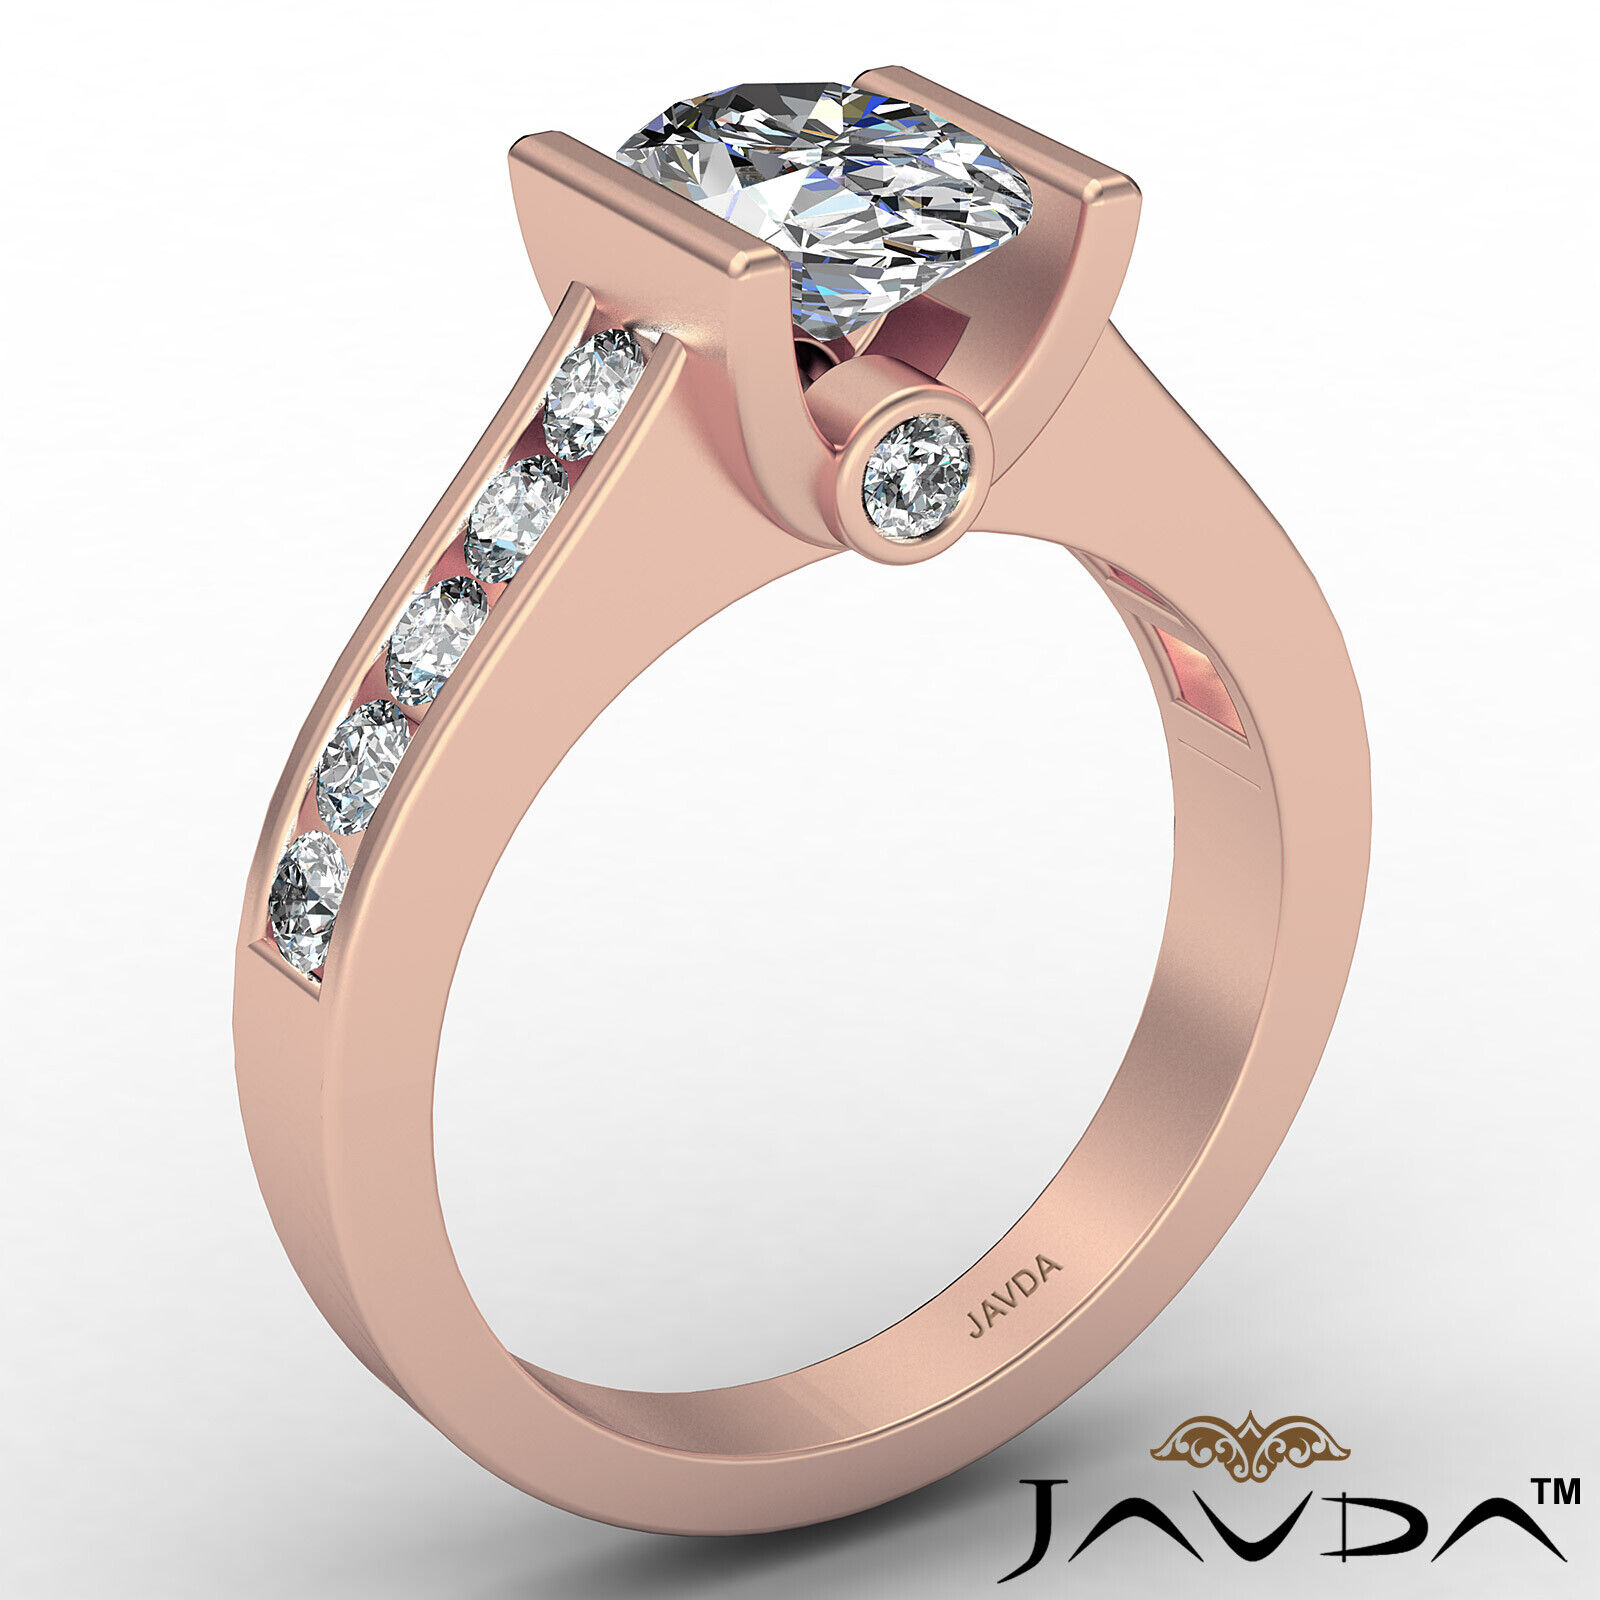 Oval Diamond Engagement Bezel Setting Ring GIA, E Color & SI2 clarity 1.4 ctw. 5